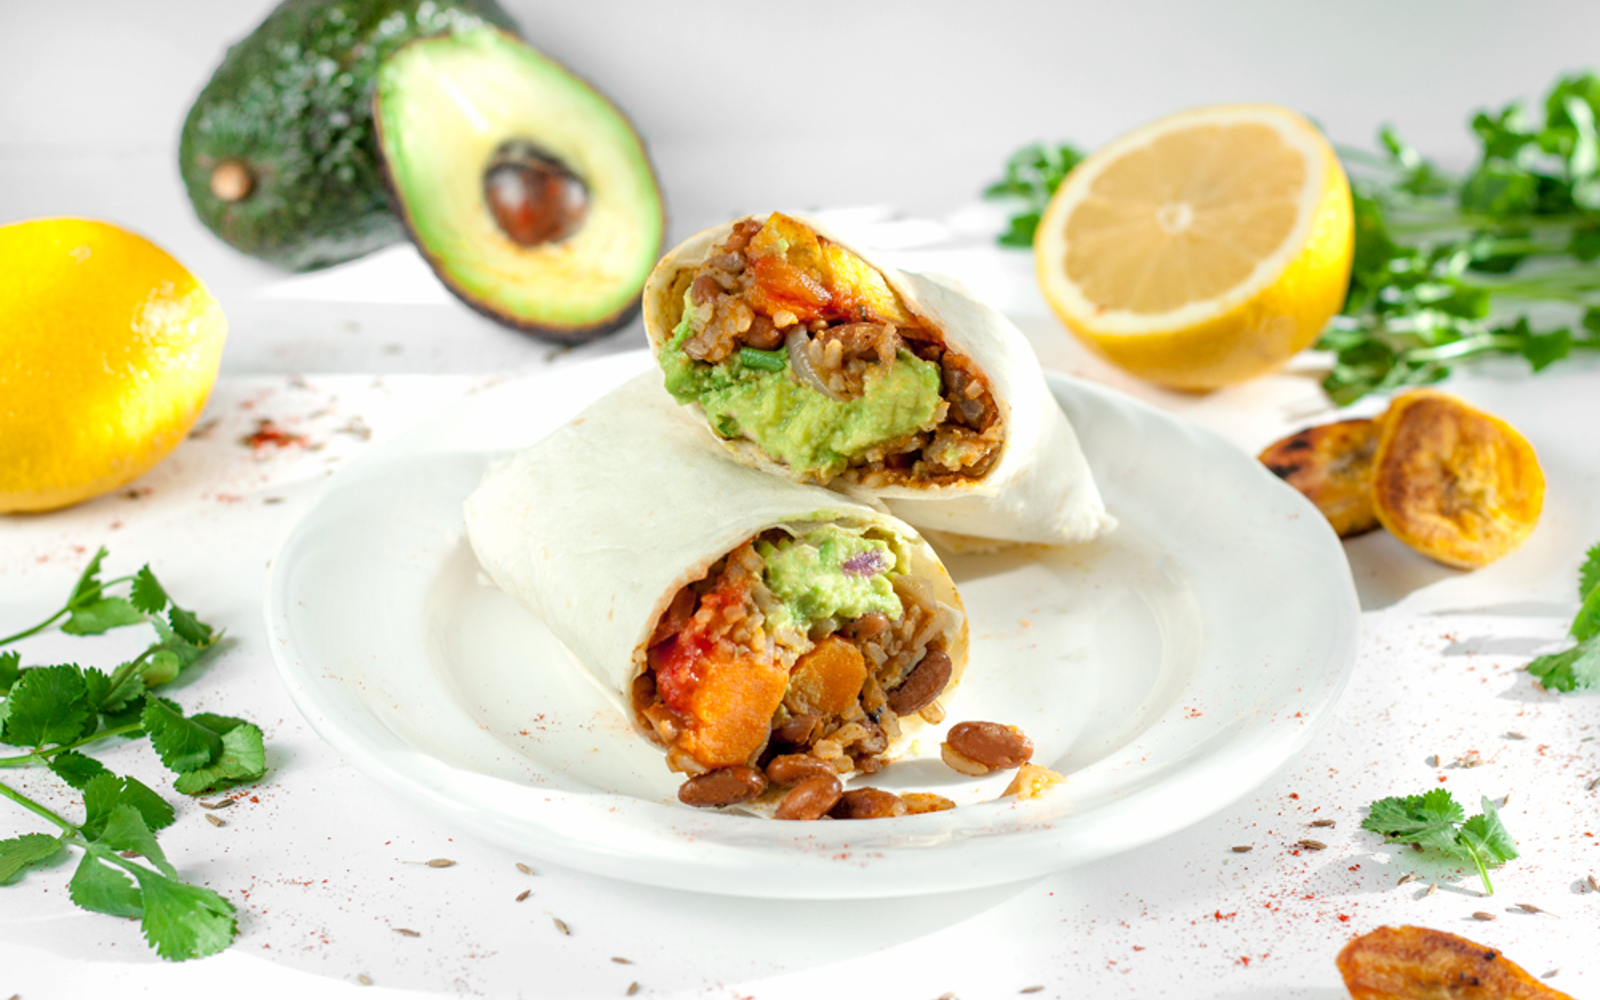 Sweet Potato and Bean Burrito With Plantains and Guacamole